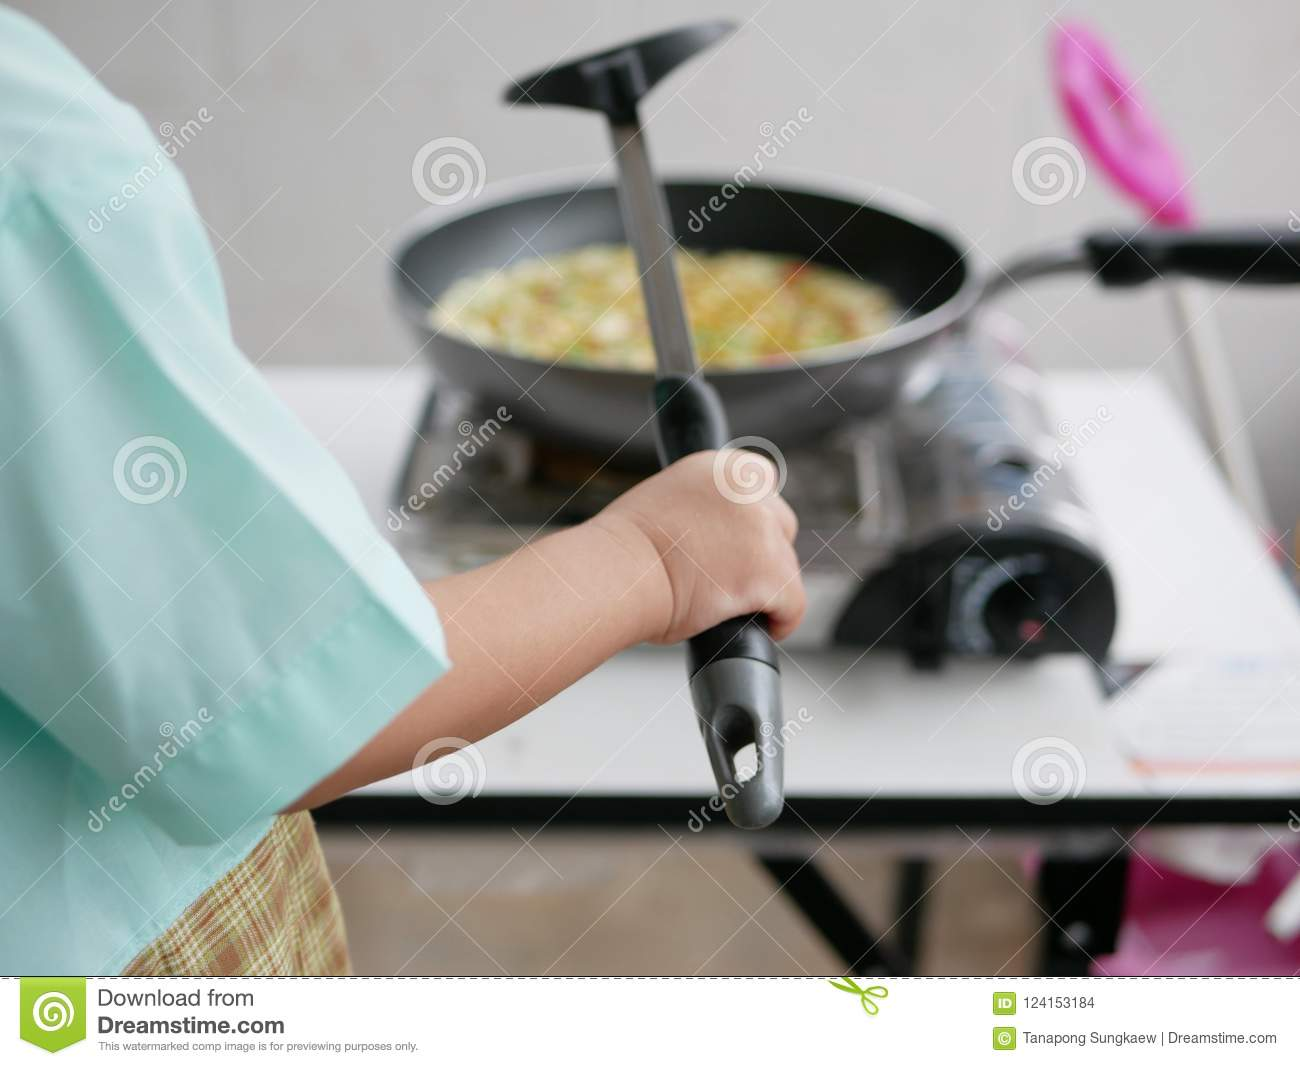 Close up of little Asian baby`s hand holding a spatula learning to cook food